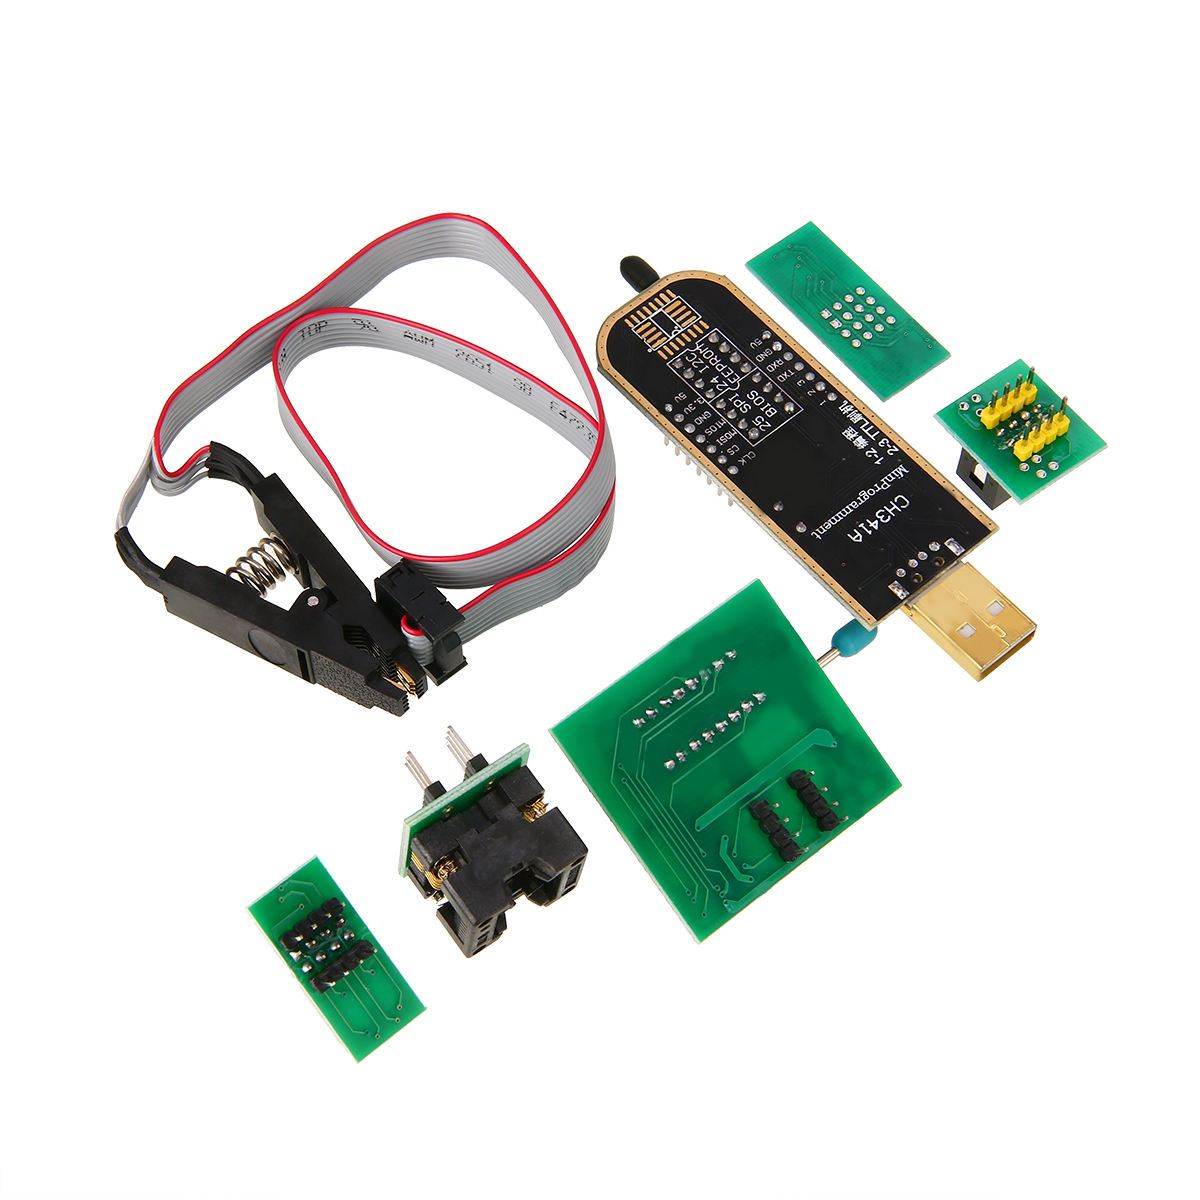 1 Set New For EEPROM Flash BIOS USB Programmer CH341A + SOIC8 Clip + 1.8V & SOIC8 Adapter Socket Converter Module universal dash programmer testing eeprom ic clamp soic8 soic 8 sop8 sop clip cable cord adapter for 24 93 25 26 series chip